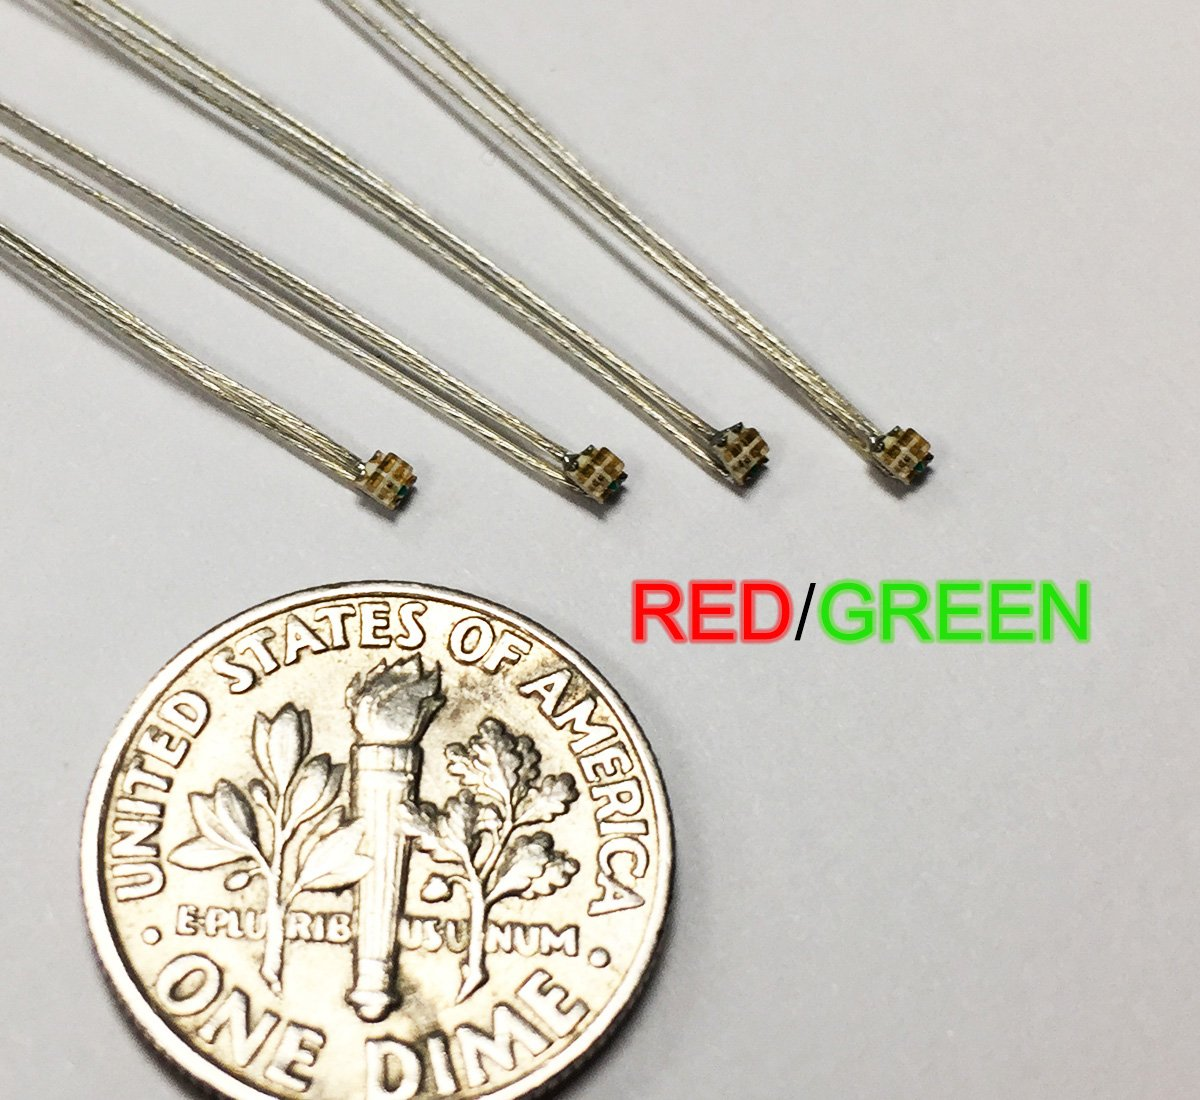 LED-0605-Red-Green-4-pack-close-up